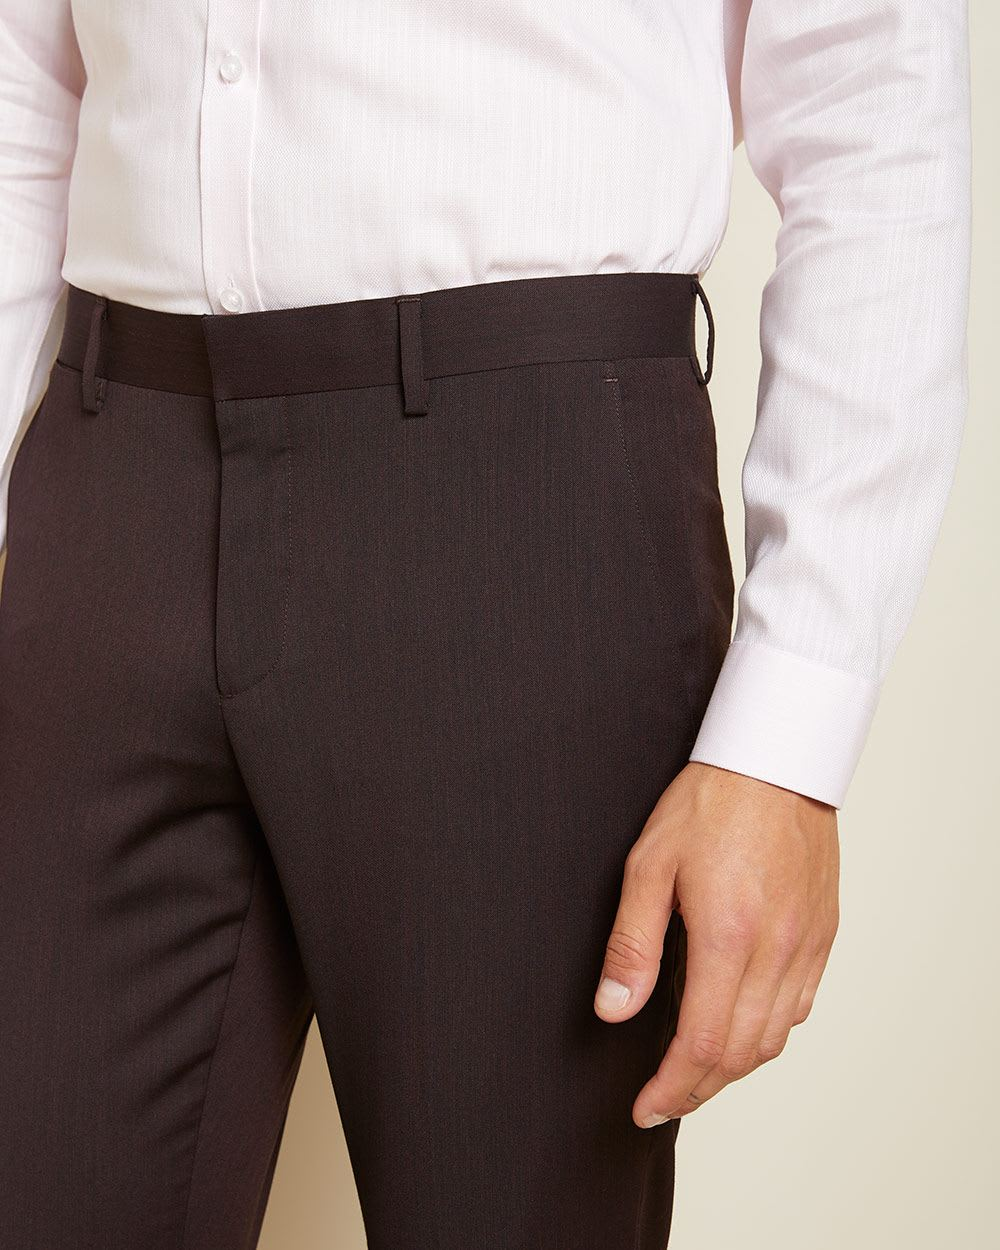 Slim Fit Dark Burgundy wool-blend Traveler suit pant